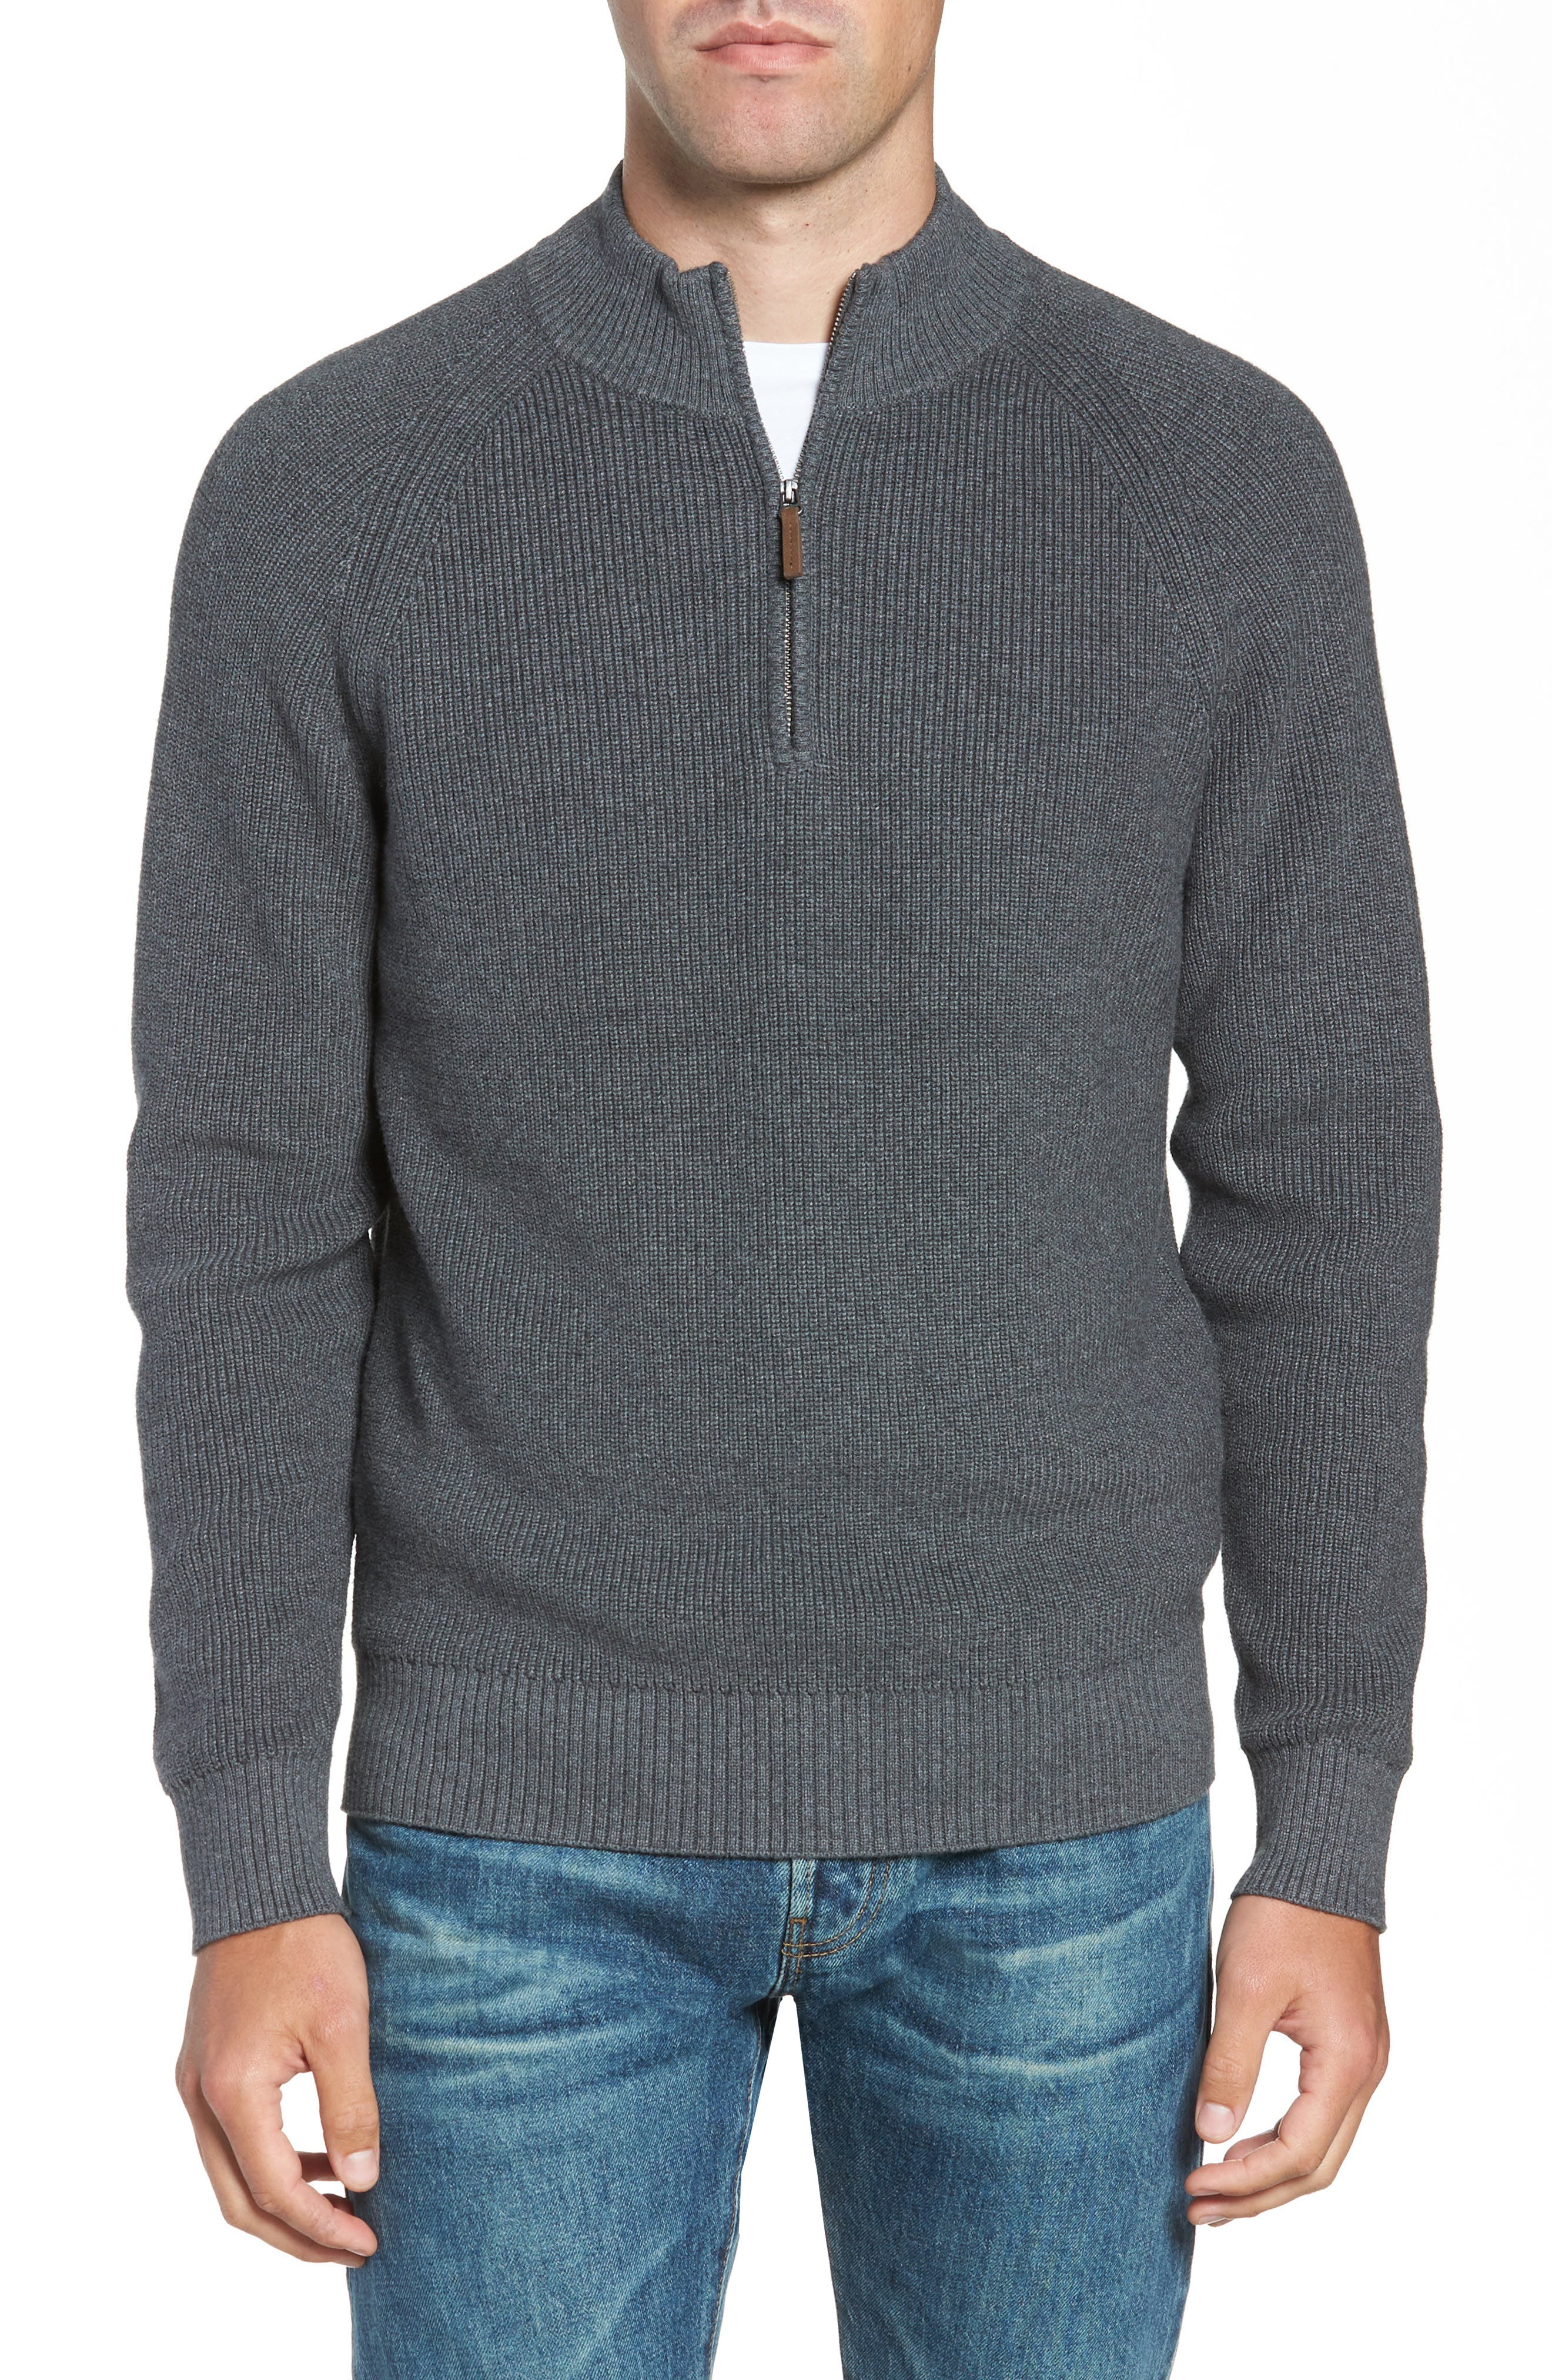 Ribbed Quarter Zip Sweater,                             Main thumbnail 1, color,                             GREY CASTLEROCK